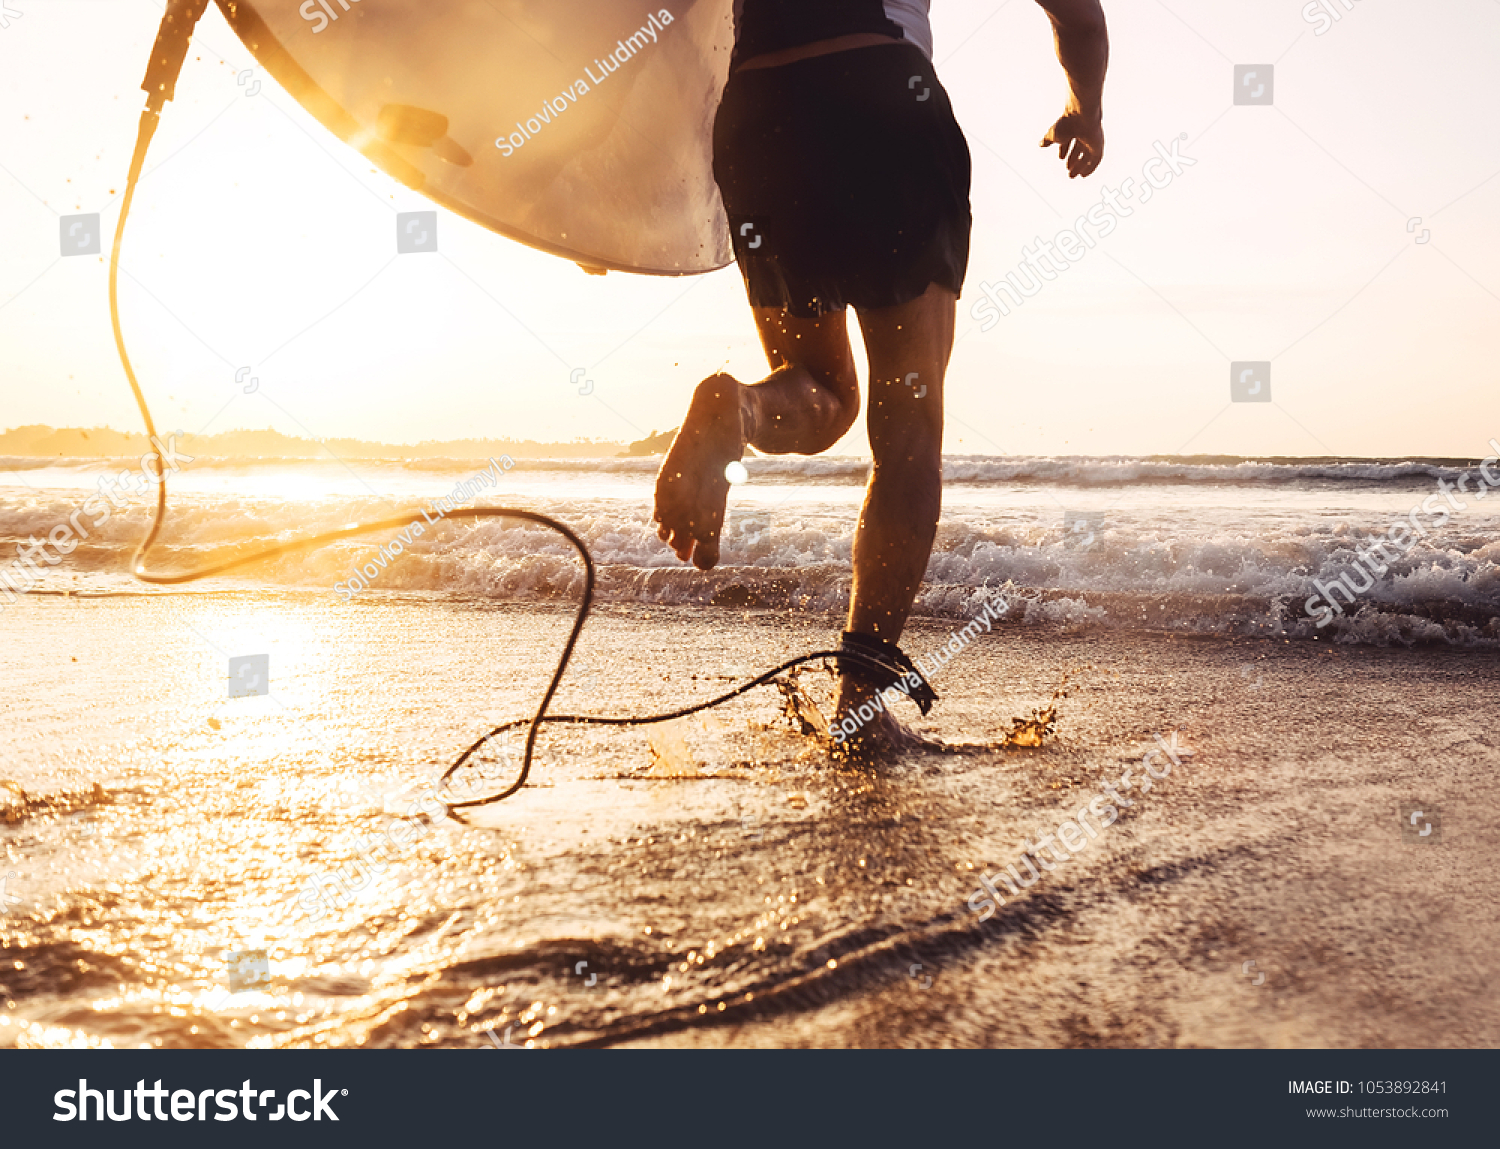 Man surfer run in ocean with surfboard. Active vacation, health lifestyle and sport concept image #1053892841